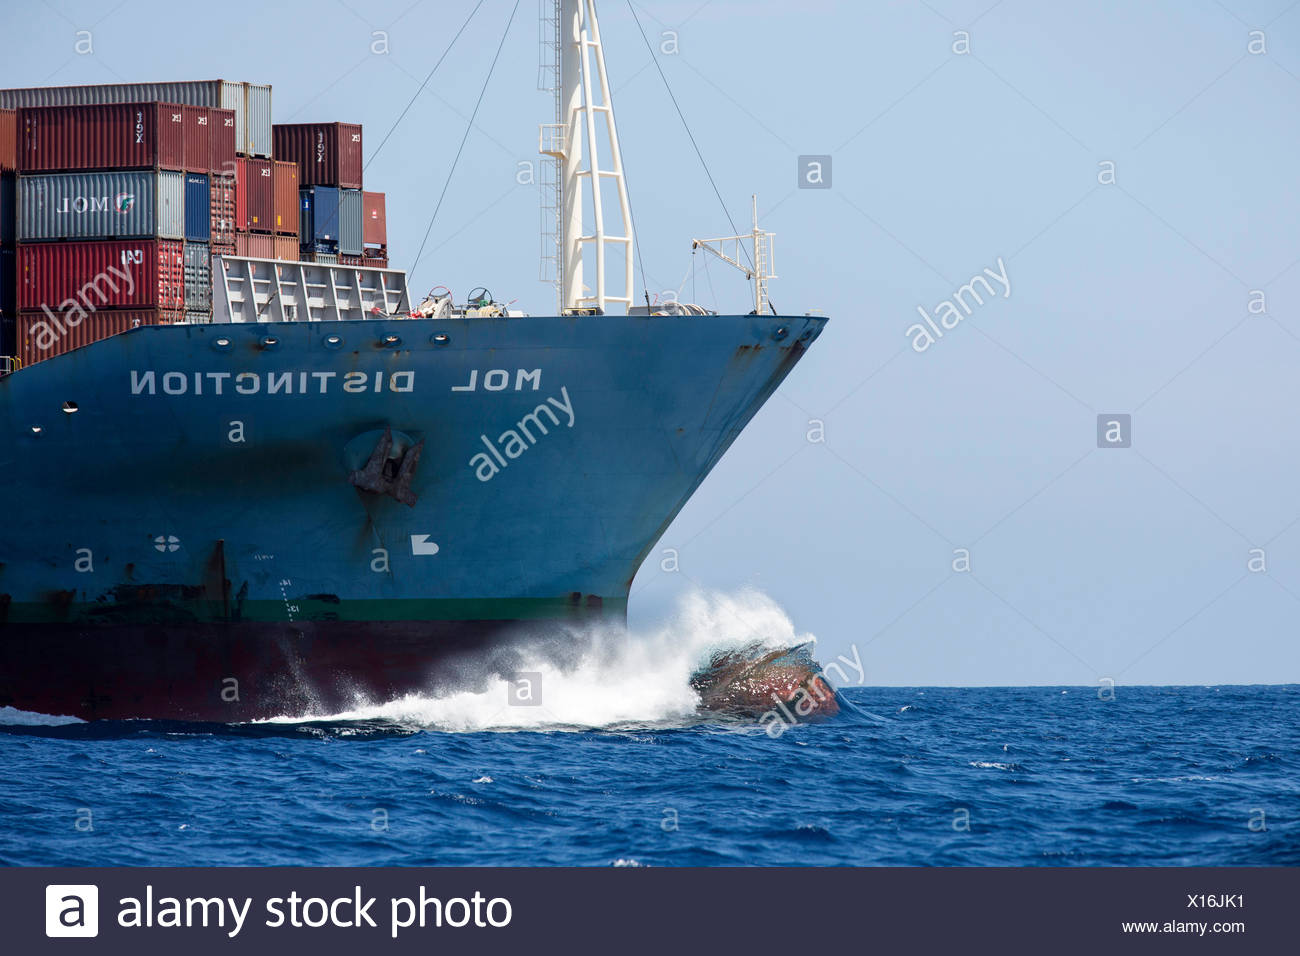 Waves crashing against the bow of the container ship 'Mol Distinction', off Mirissa, Sri Lanka, Indian Ocean. All non-editorial uses must be cleared individually. - Stock Image